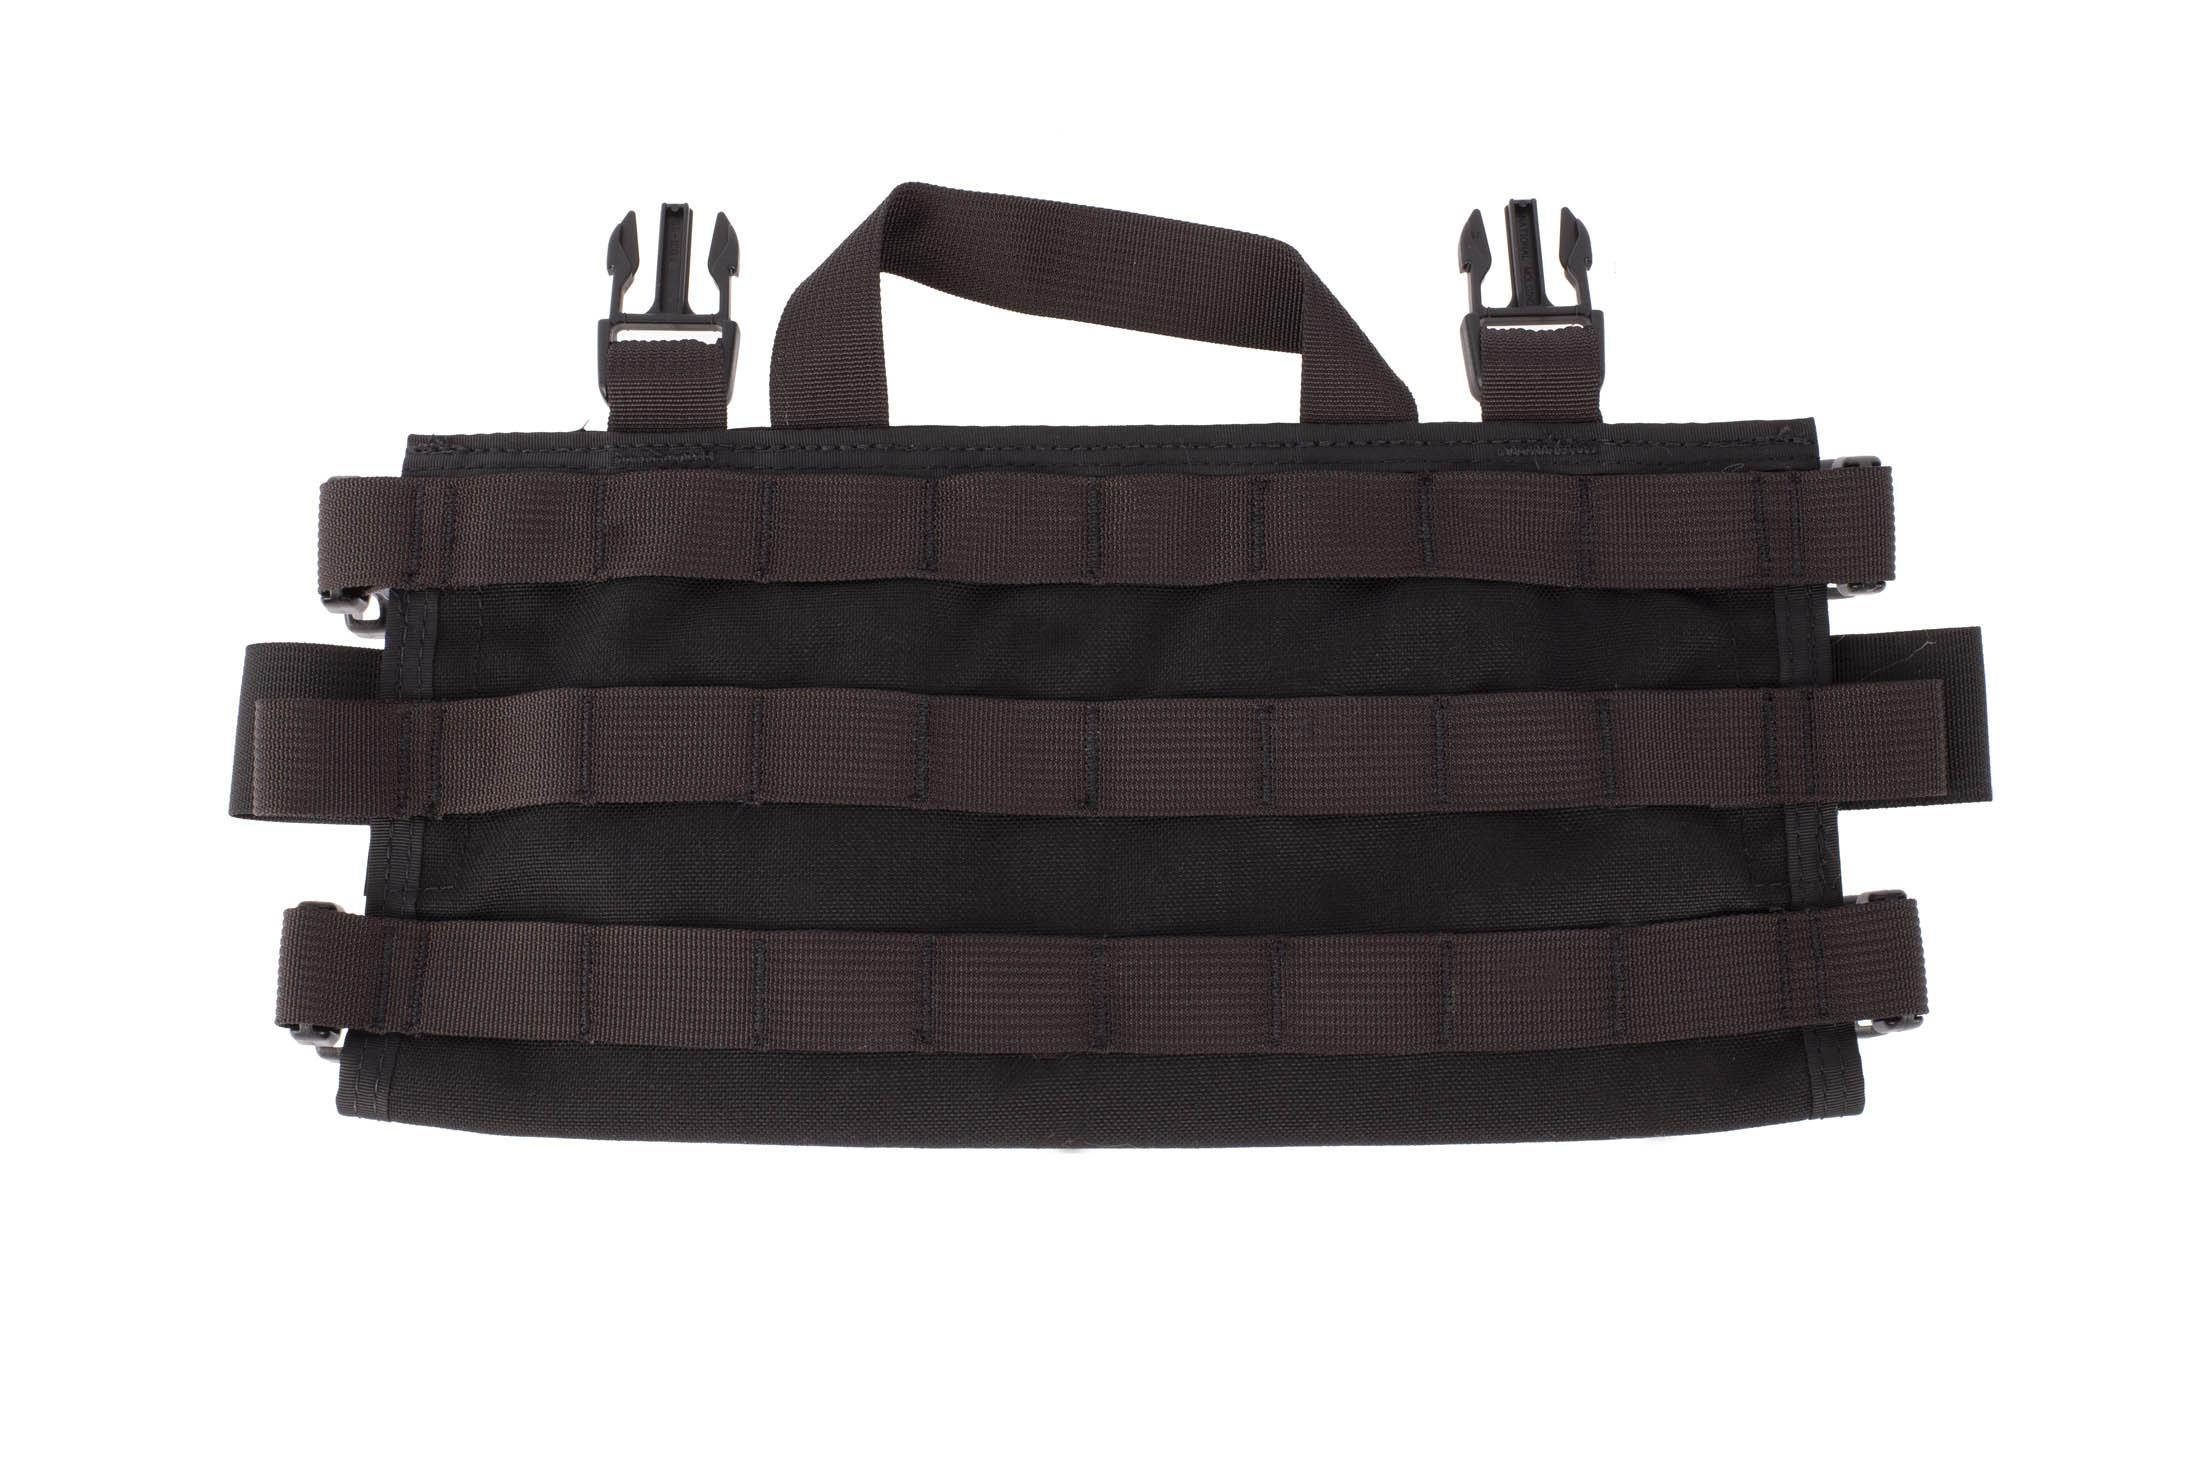 High Speed Gear AO chest rig in black features three rows of PALS webbing